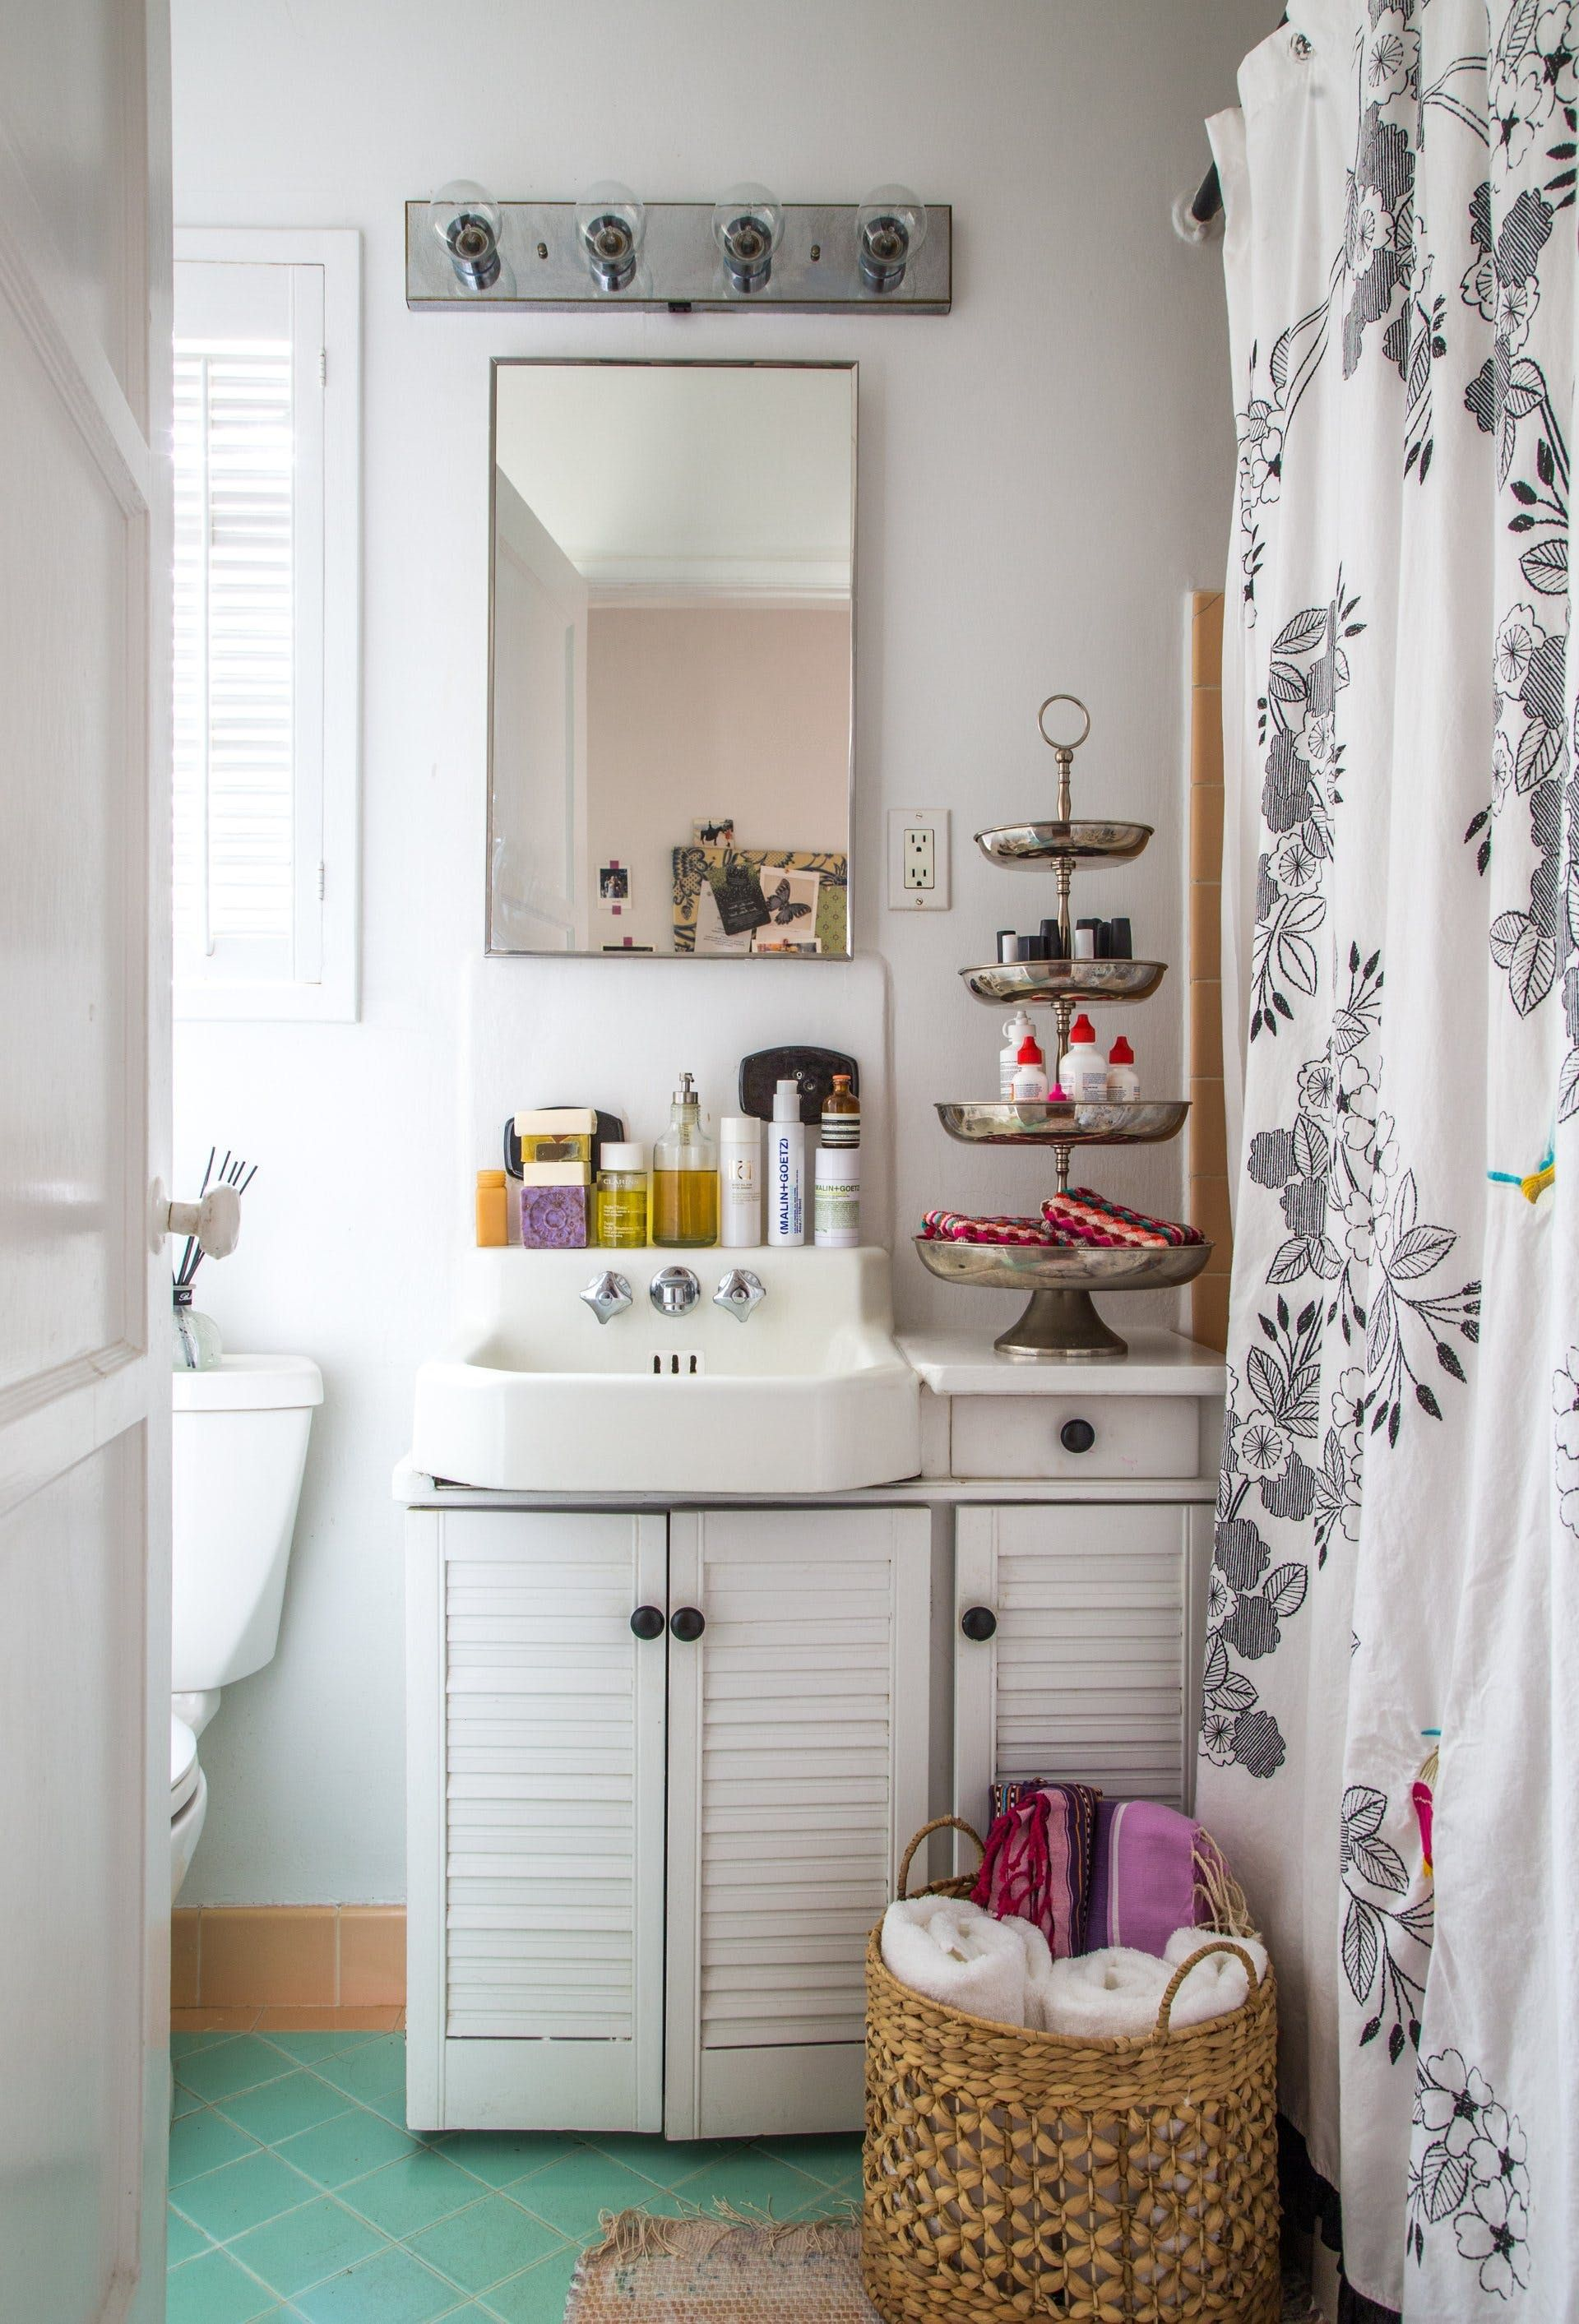 How to Love Your Tiny Rental Bathroom: Styling Ideas from 25 Real